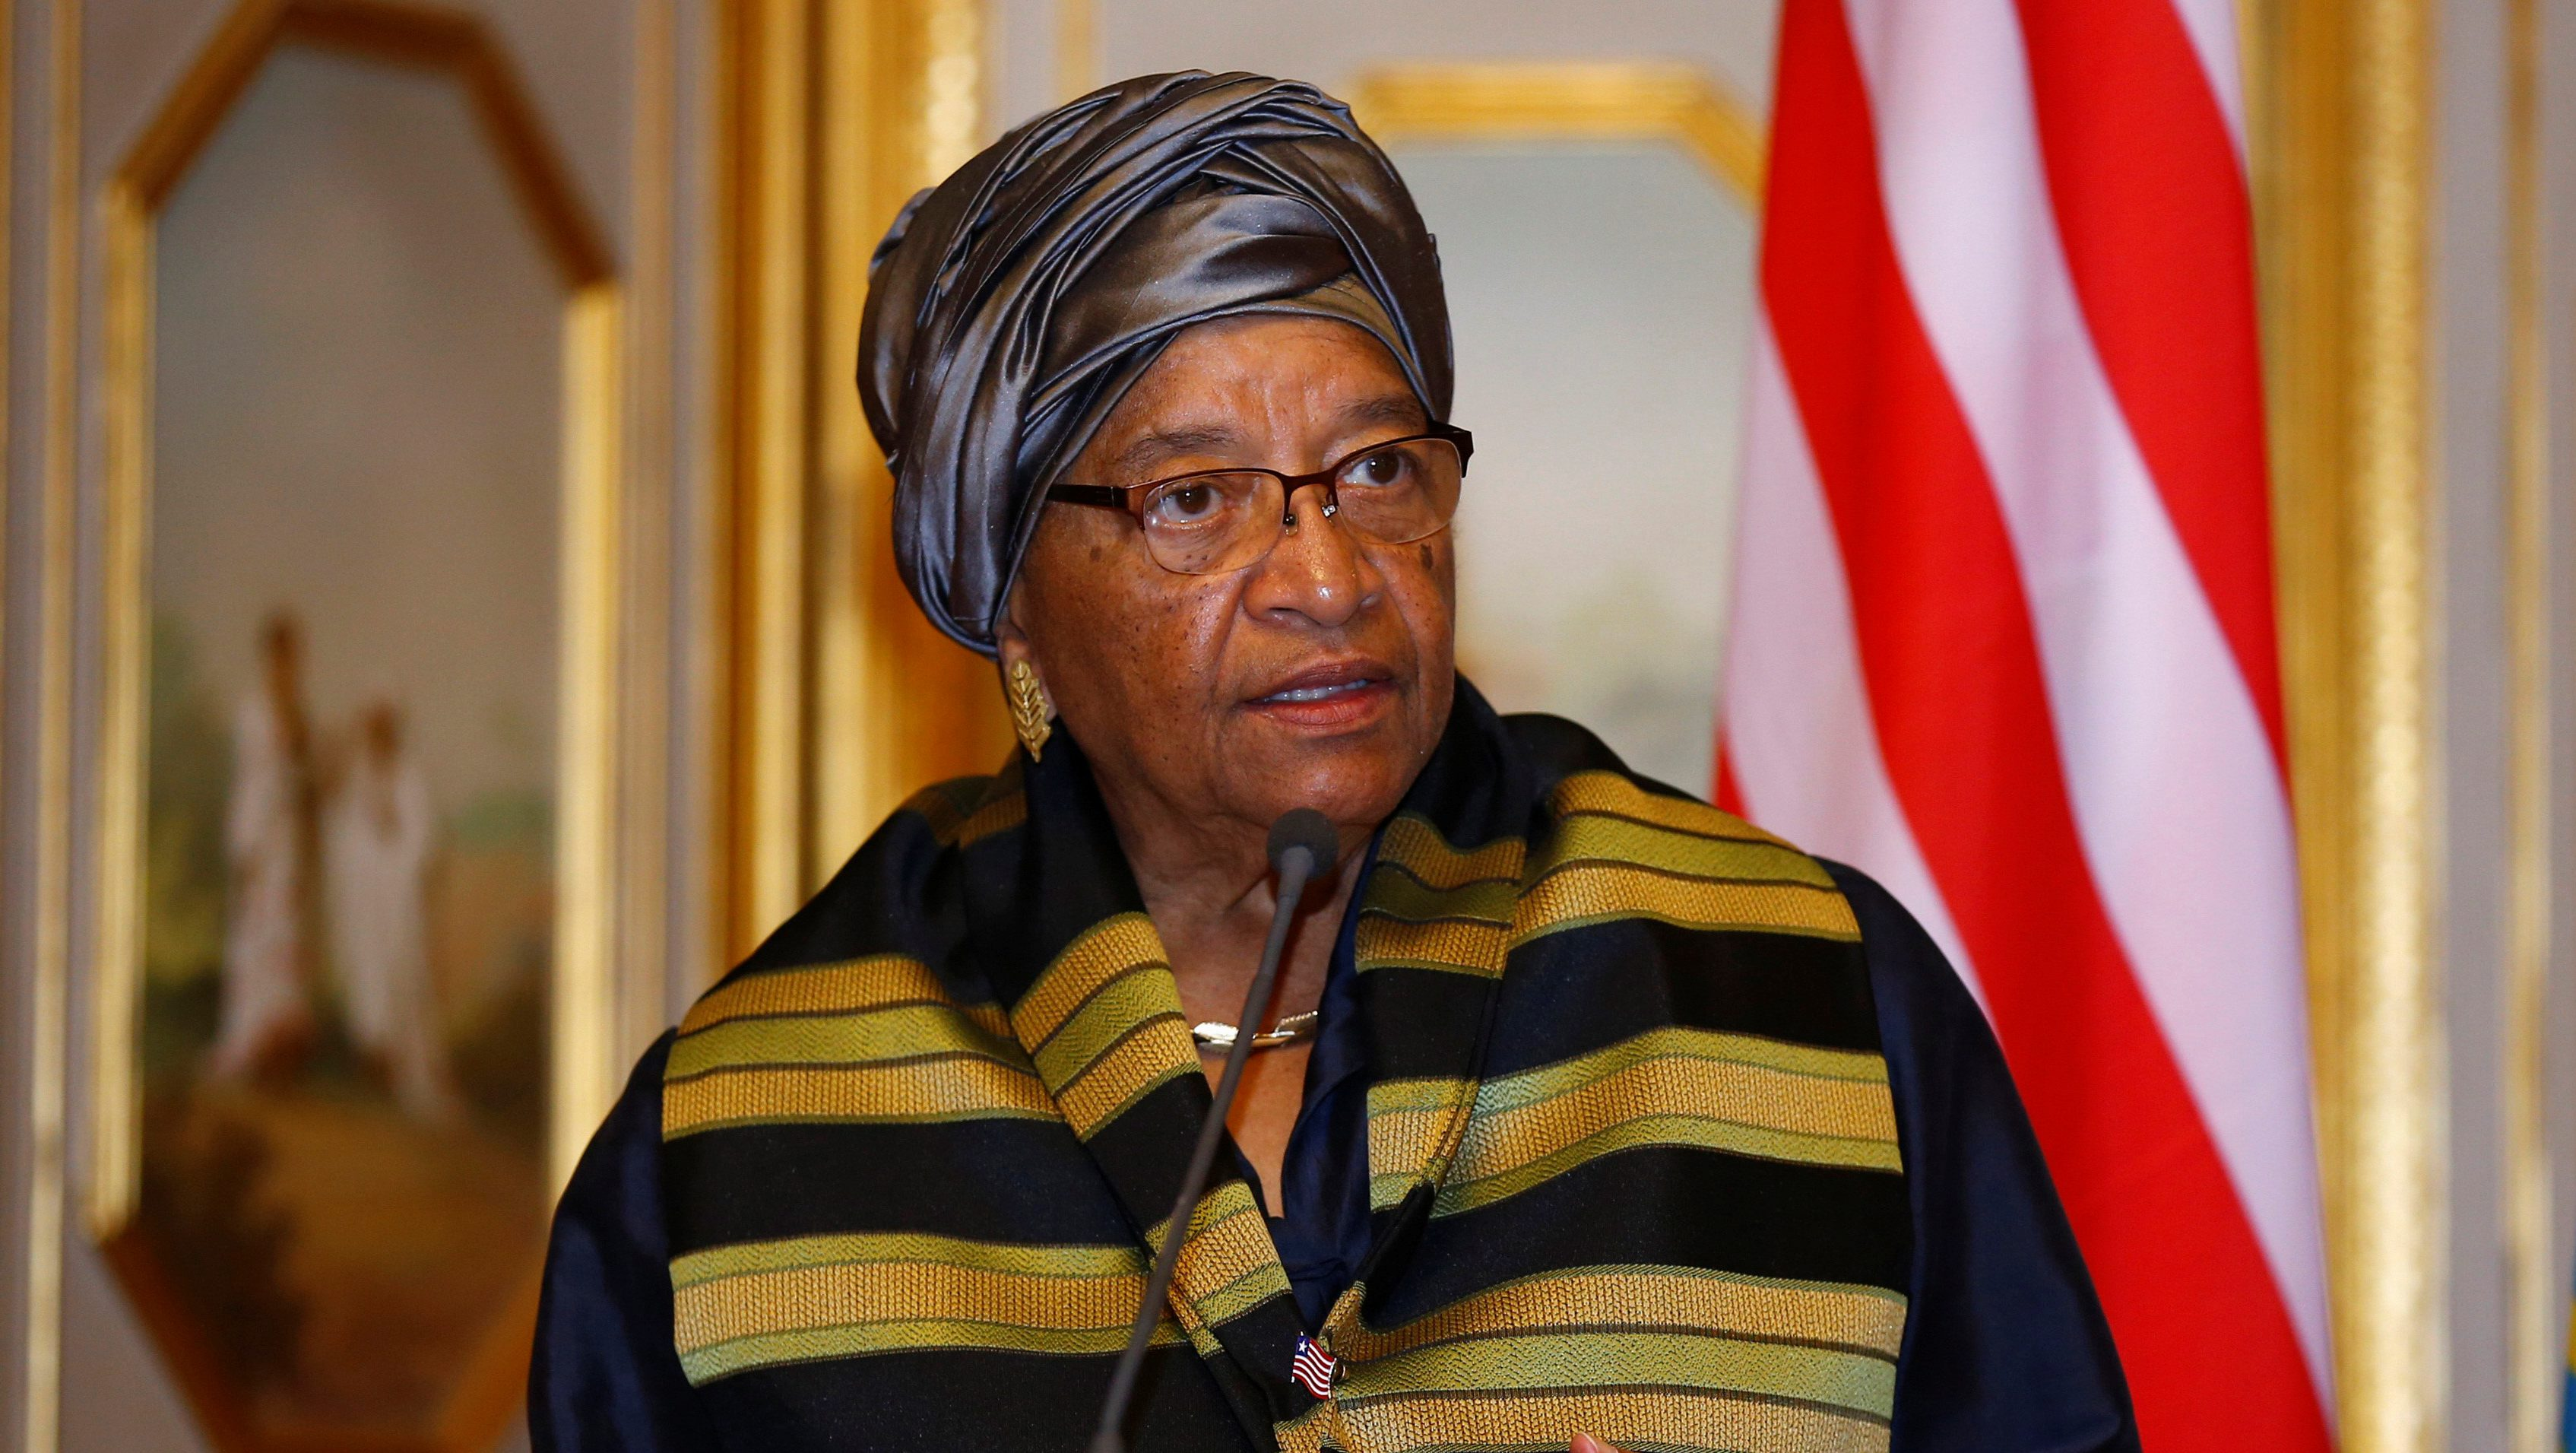 Liberia's President Ellen Johnson-Sirleaf addresses a news conference at the National Palace during her official visit to Ethiopia's capital Addis Ababa